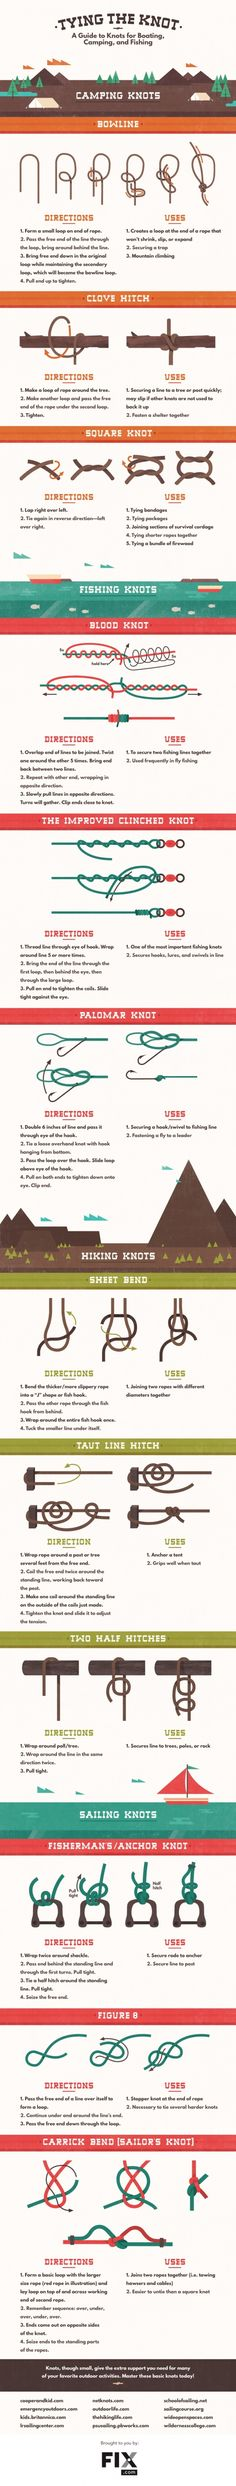 Infographic: How to tie different types of knots